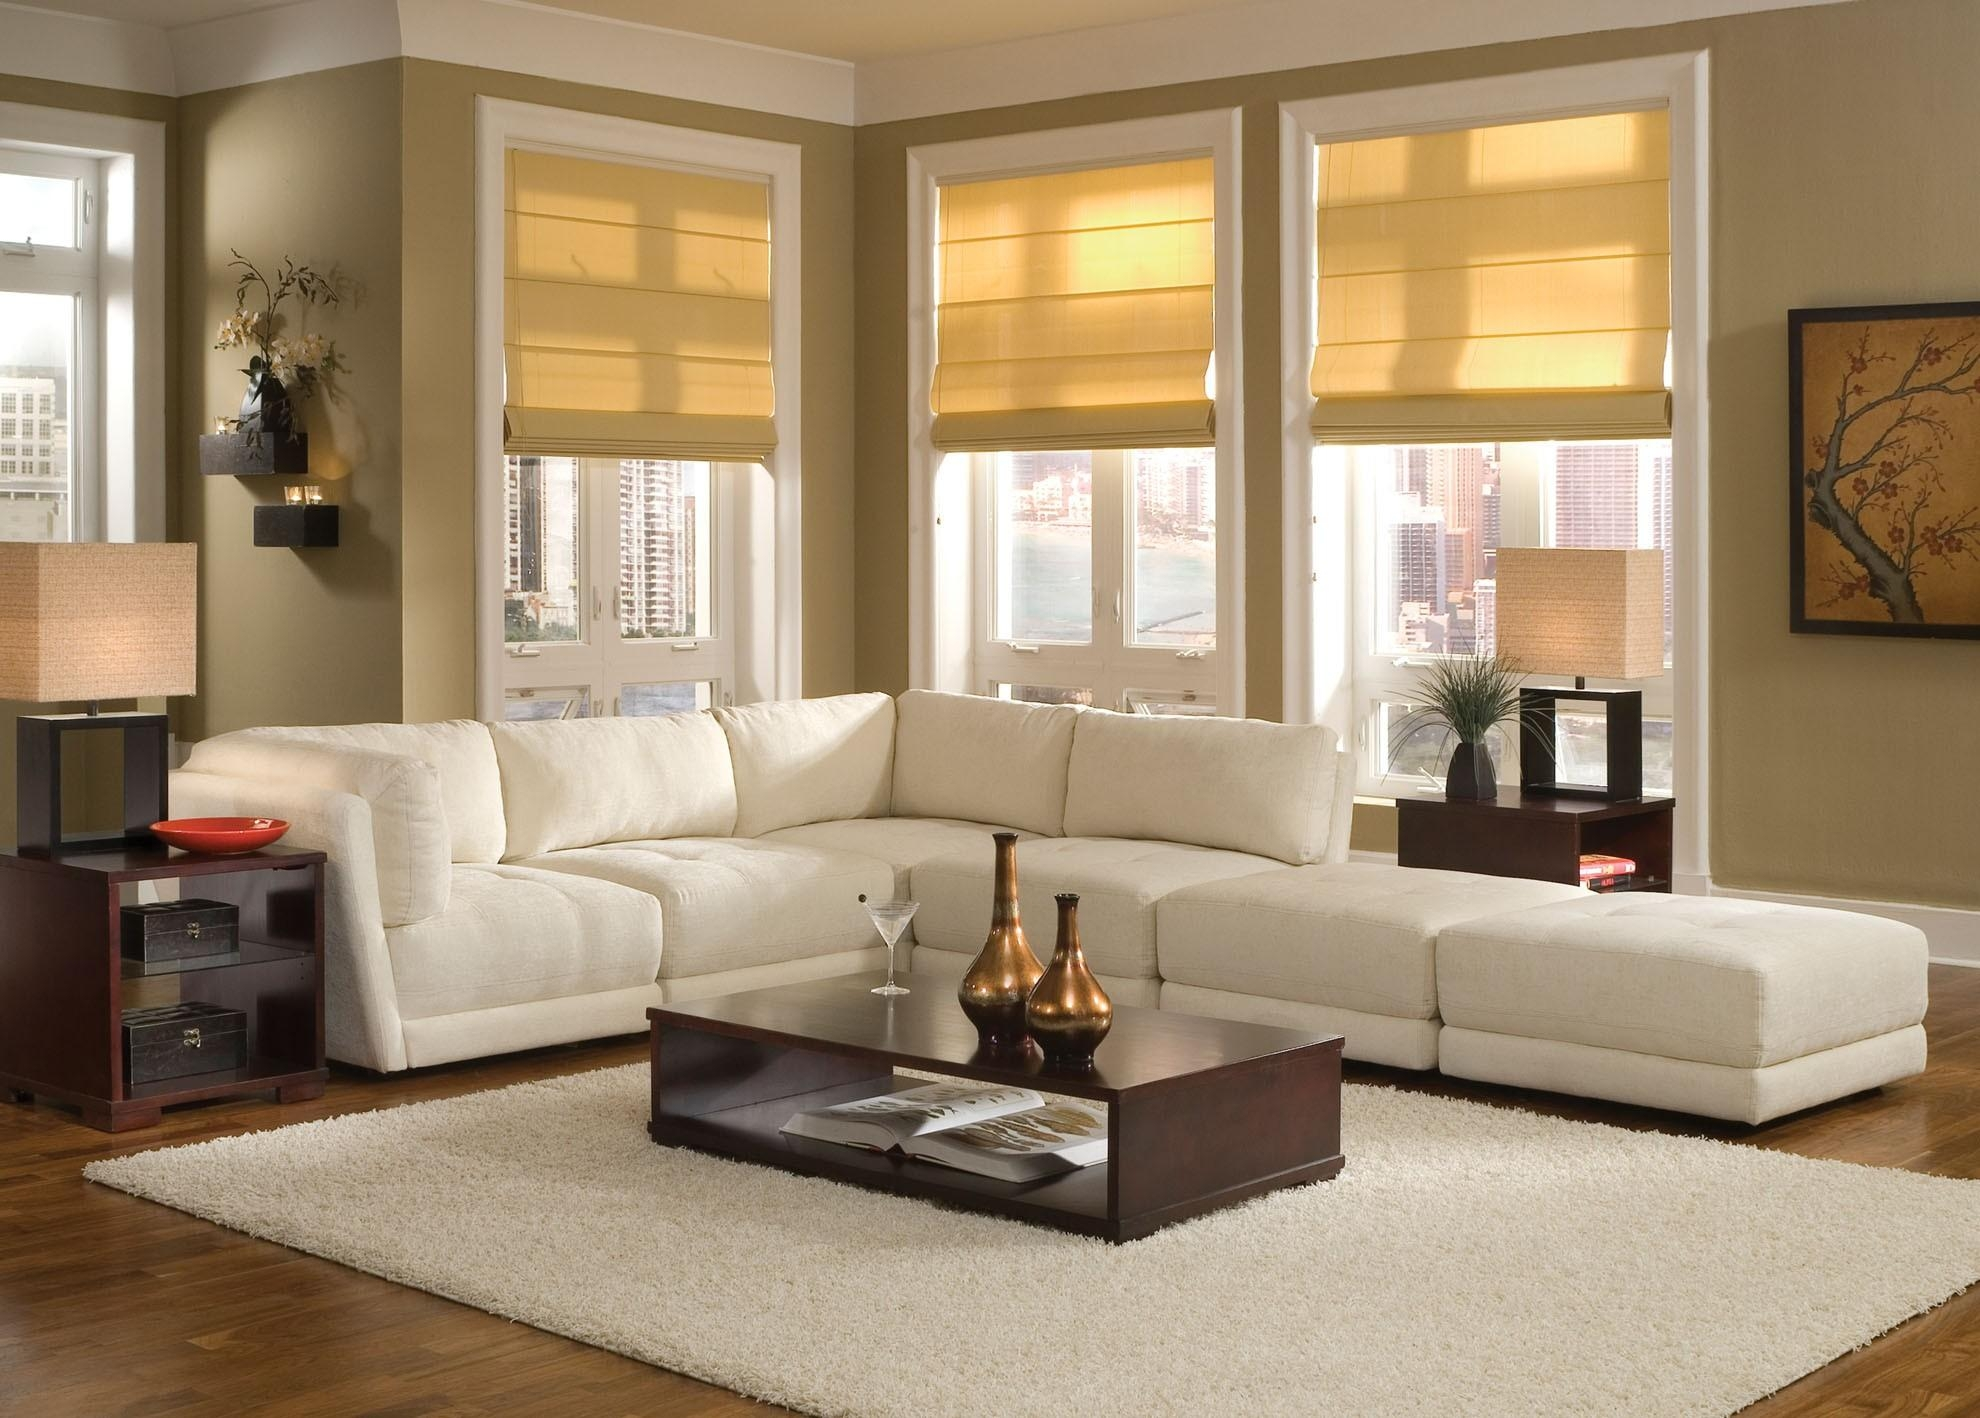 Sofas Center : Huge Leather Sectional Sofa Creative Home Inside Huge Leather Sectional (Image 17 of 20)